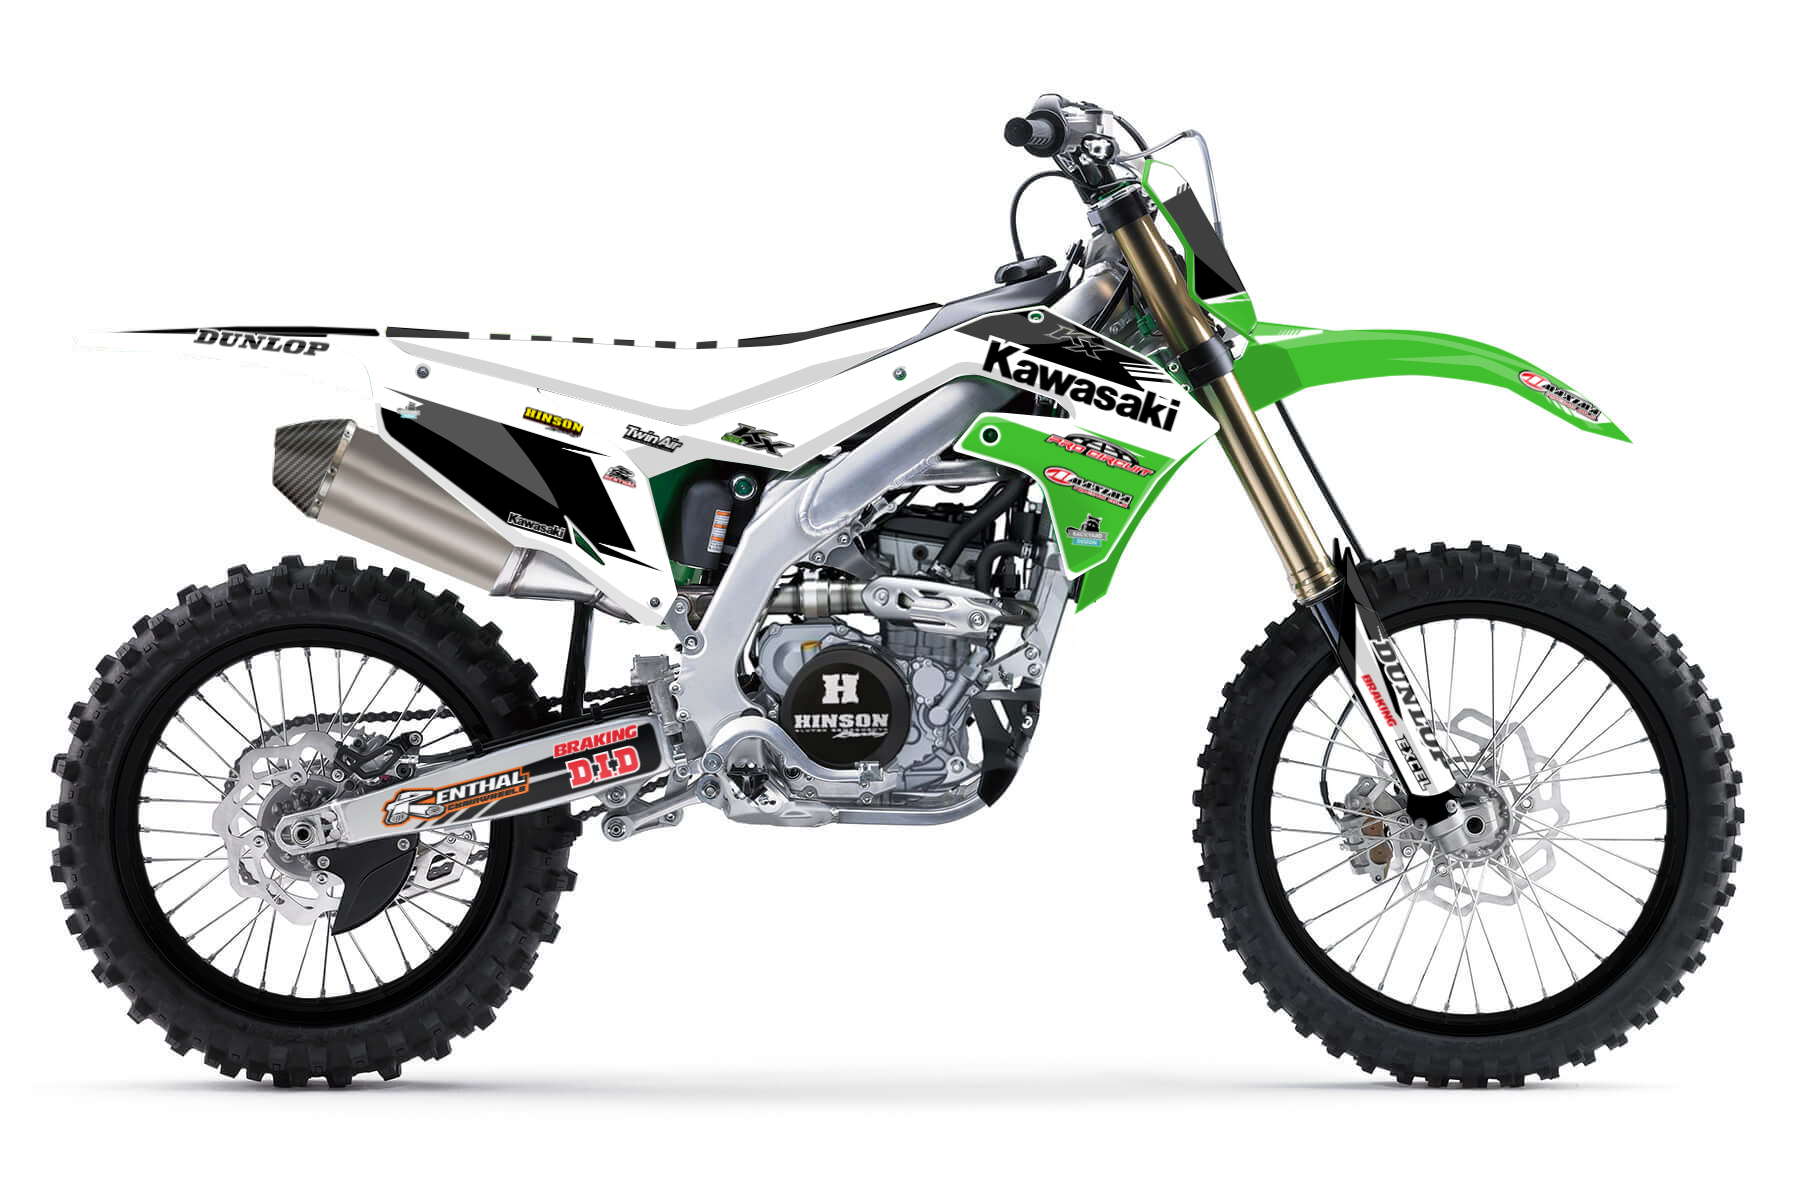 Kawasaki KX250F Graphic Kits  The Kawasaki KX 250F combines a powerful four-stroke engine with a hydraulic operated clutch, an electric starter and a slim and sturdy aluminum frame.